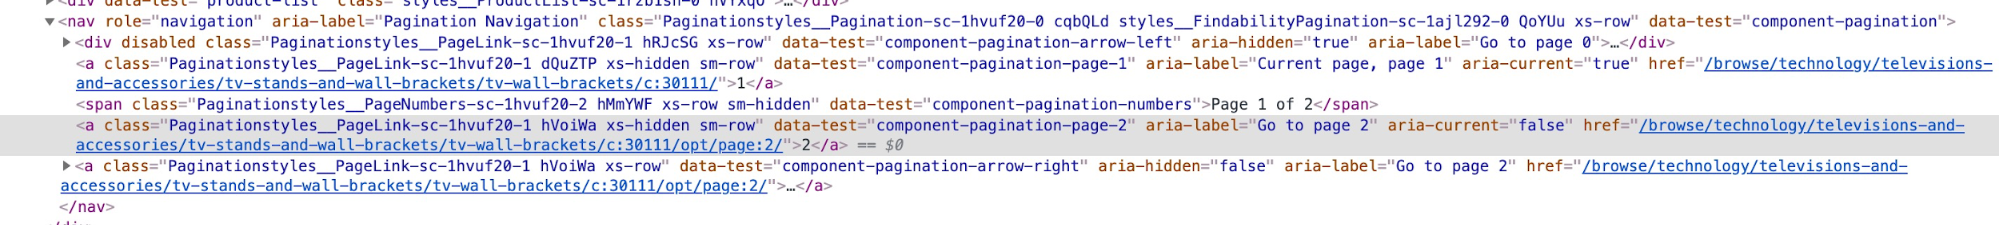 HTML code for pagination with href links highlighted.